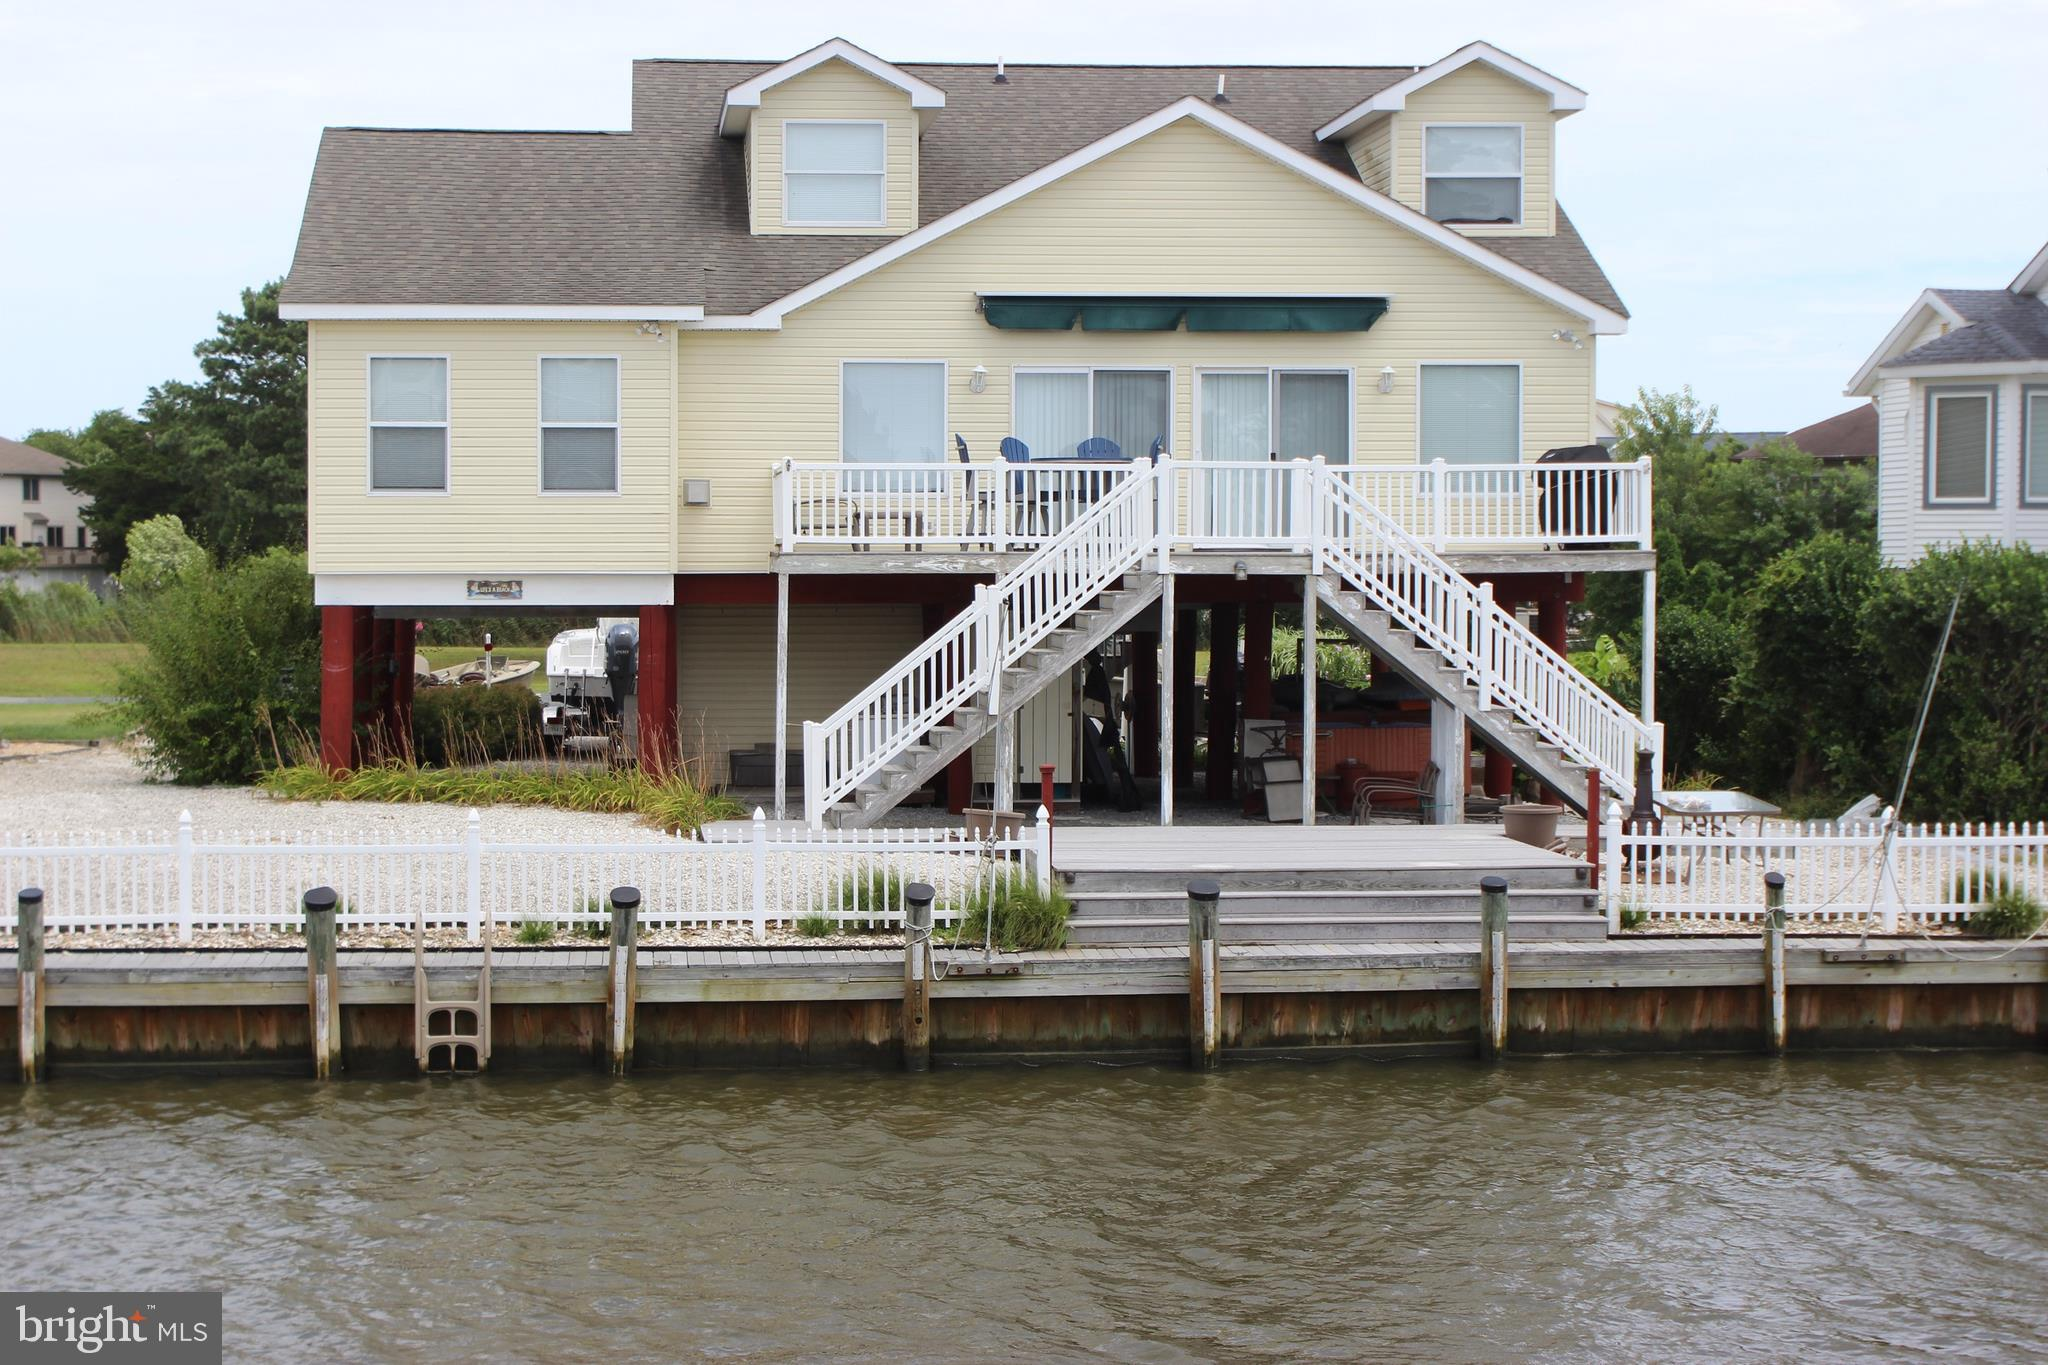 3/1427 Just pack your bags and relax! Located on an oversized canal lot in Captains Cove w/approx 75